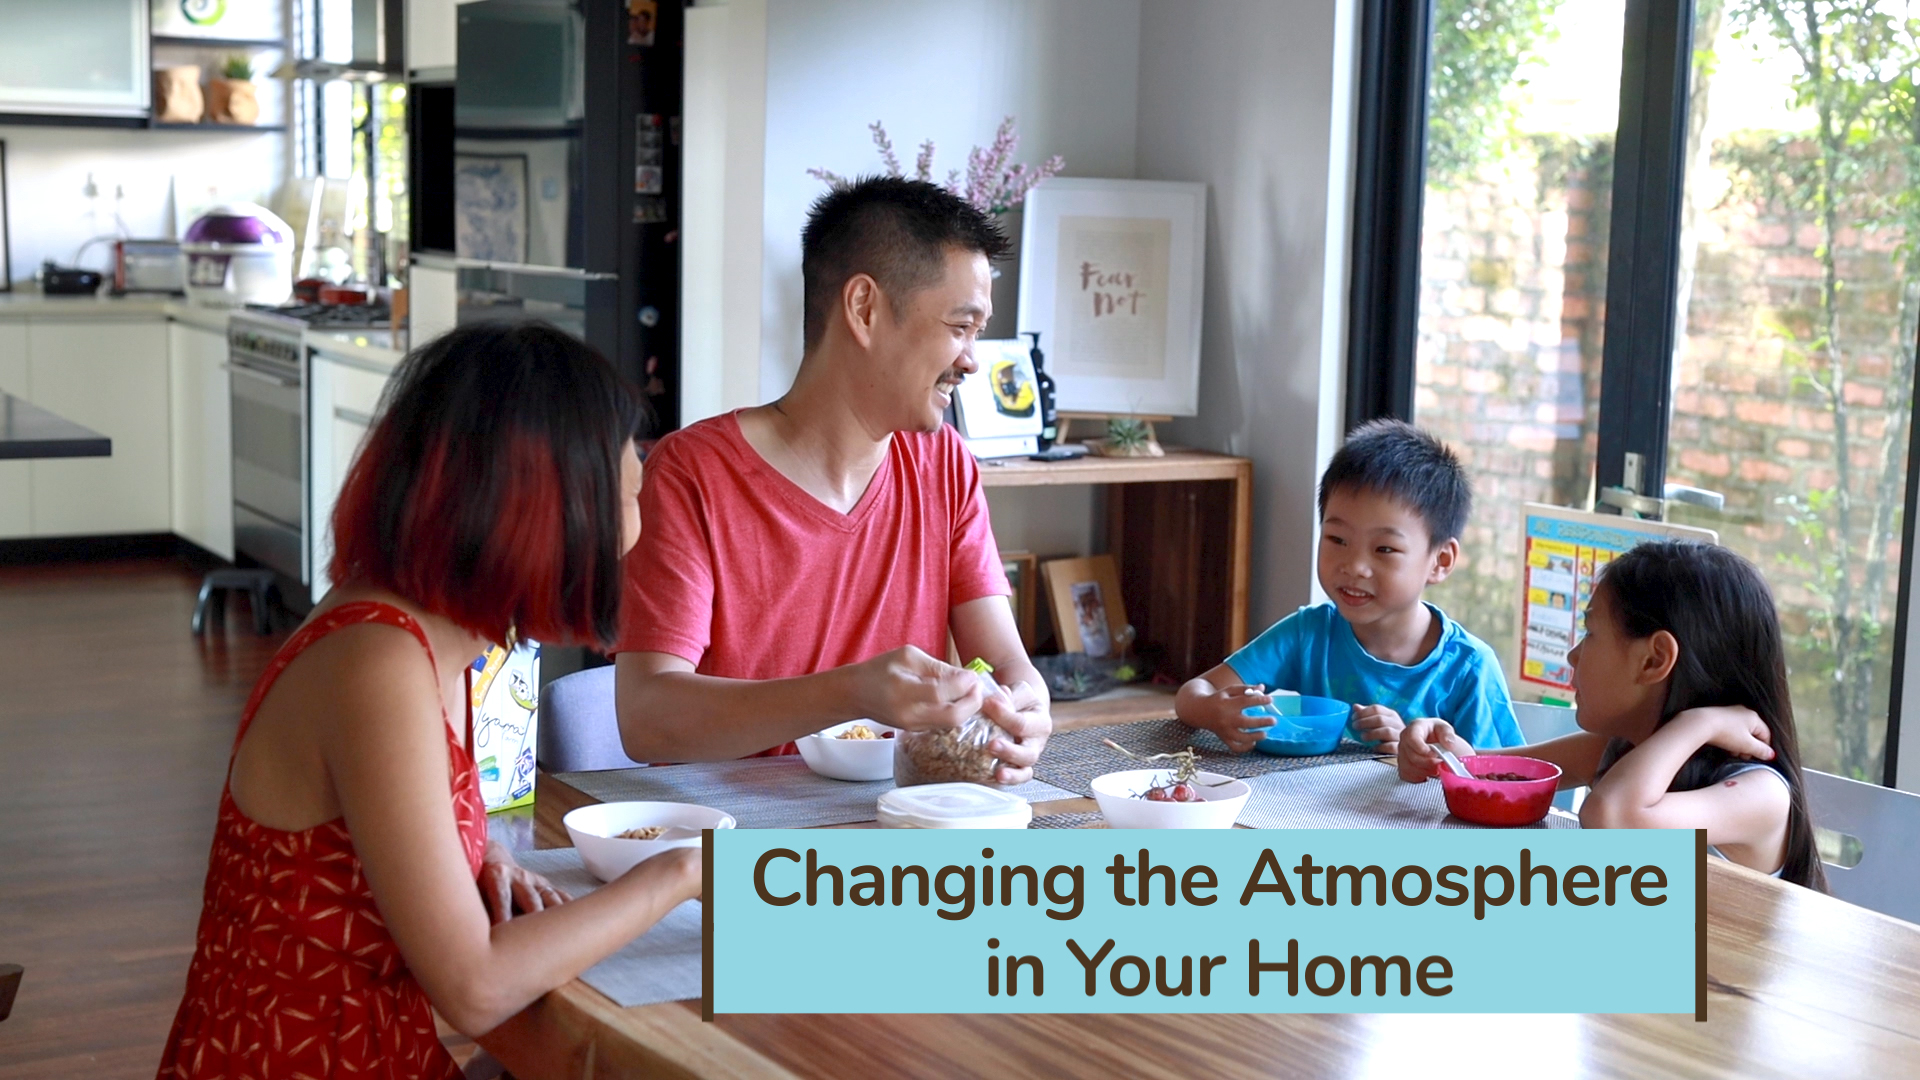 Changing the Atmosphere in Your Home